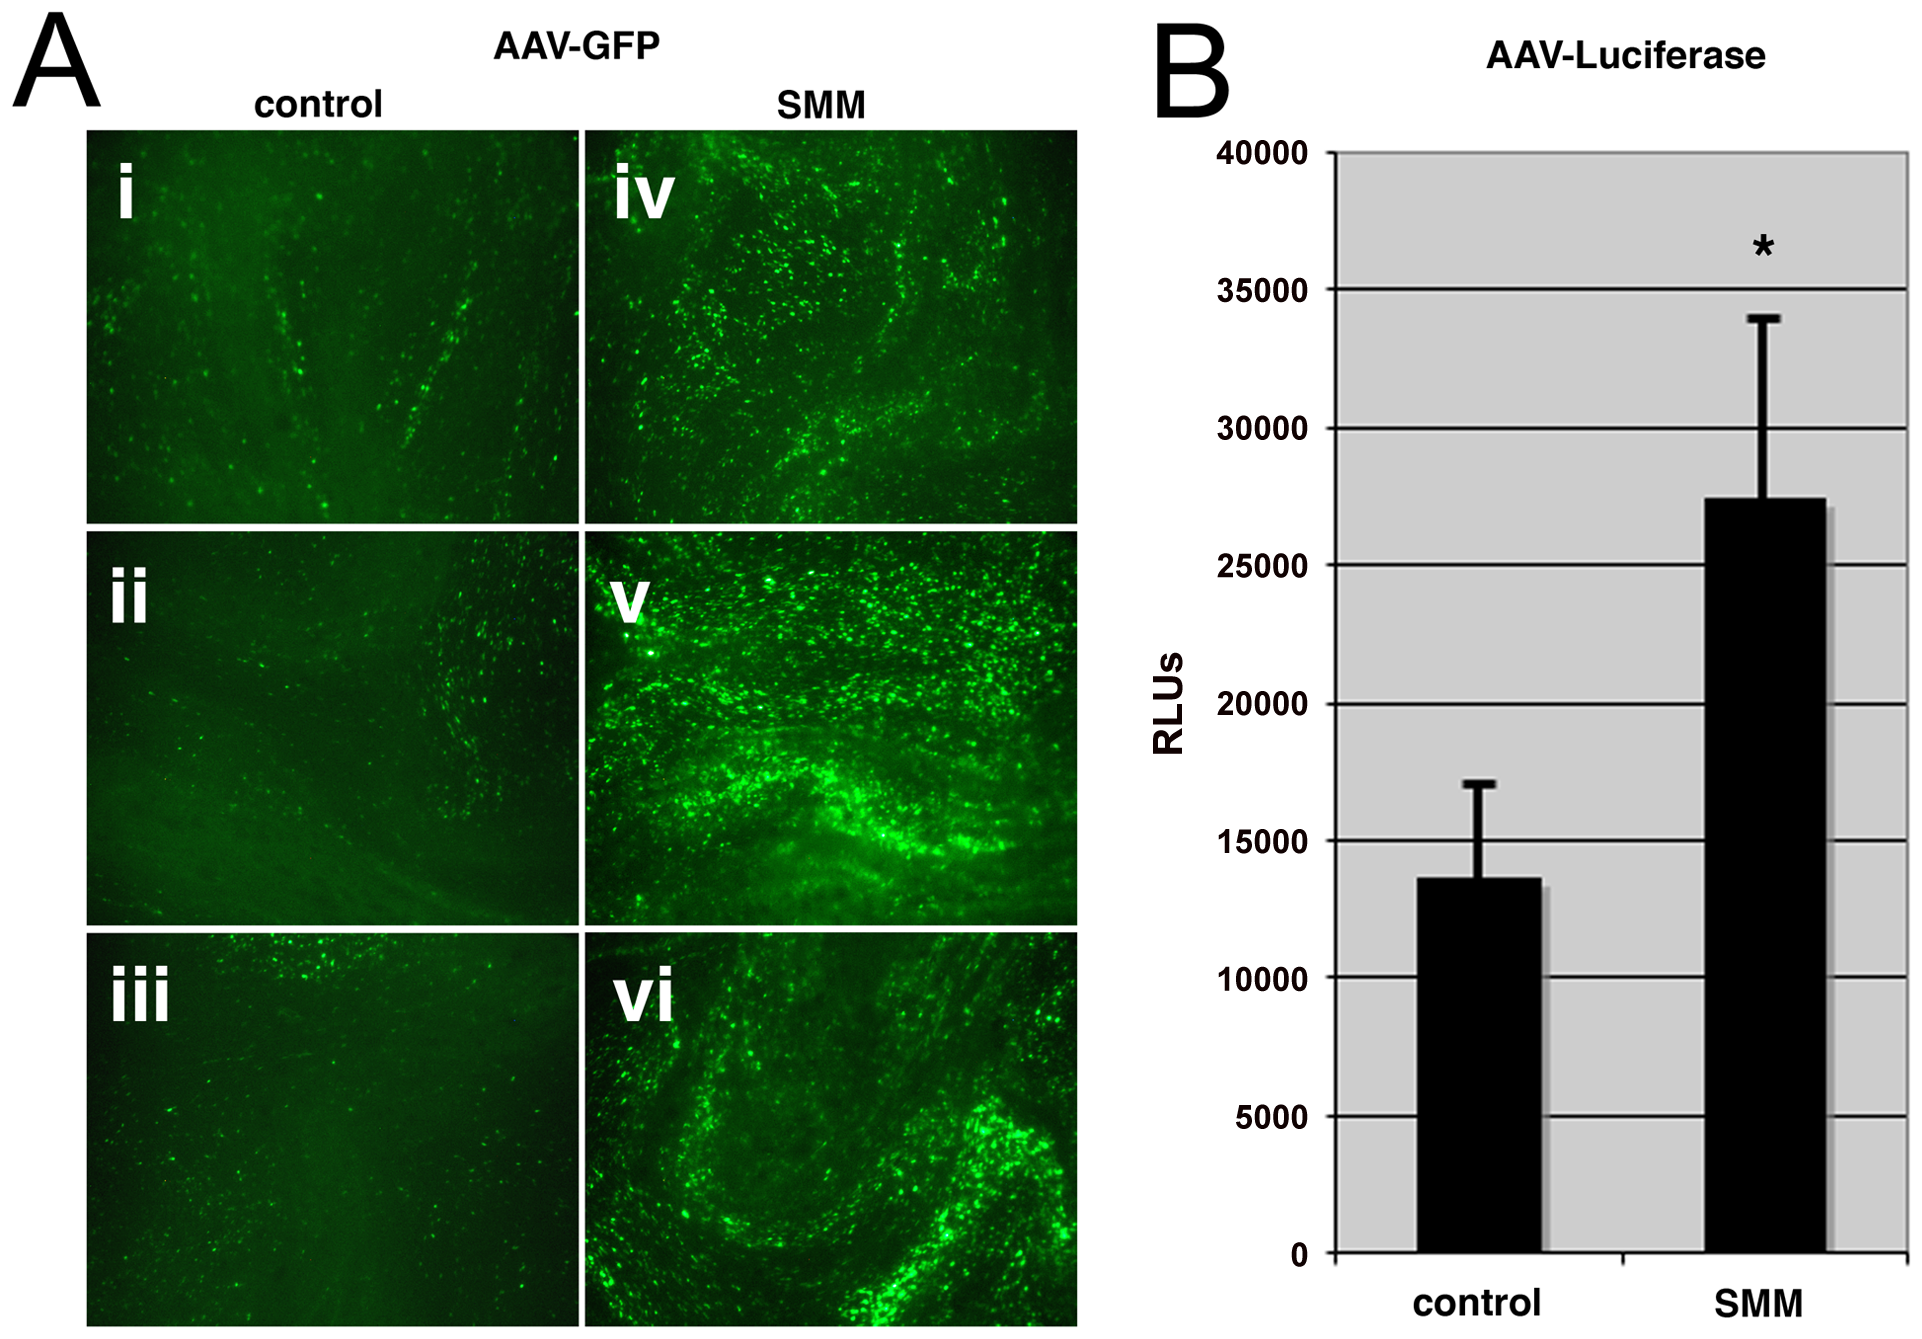 Human airway epithelium under stress is more susceptible to AAV infection.